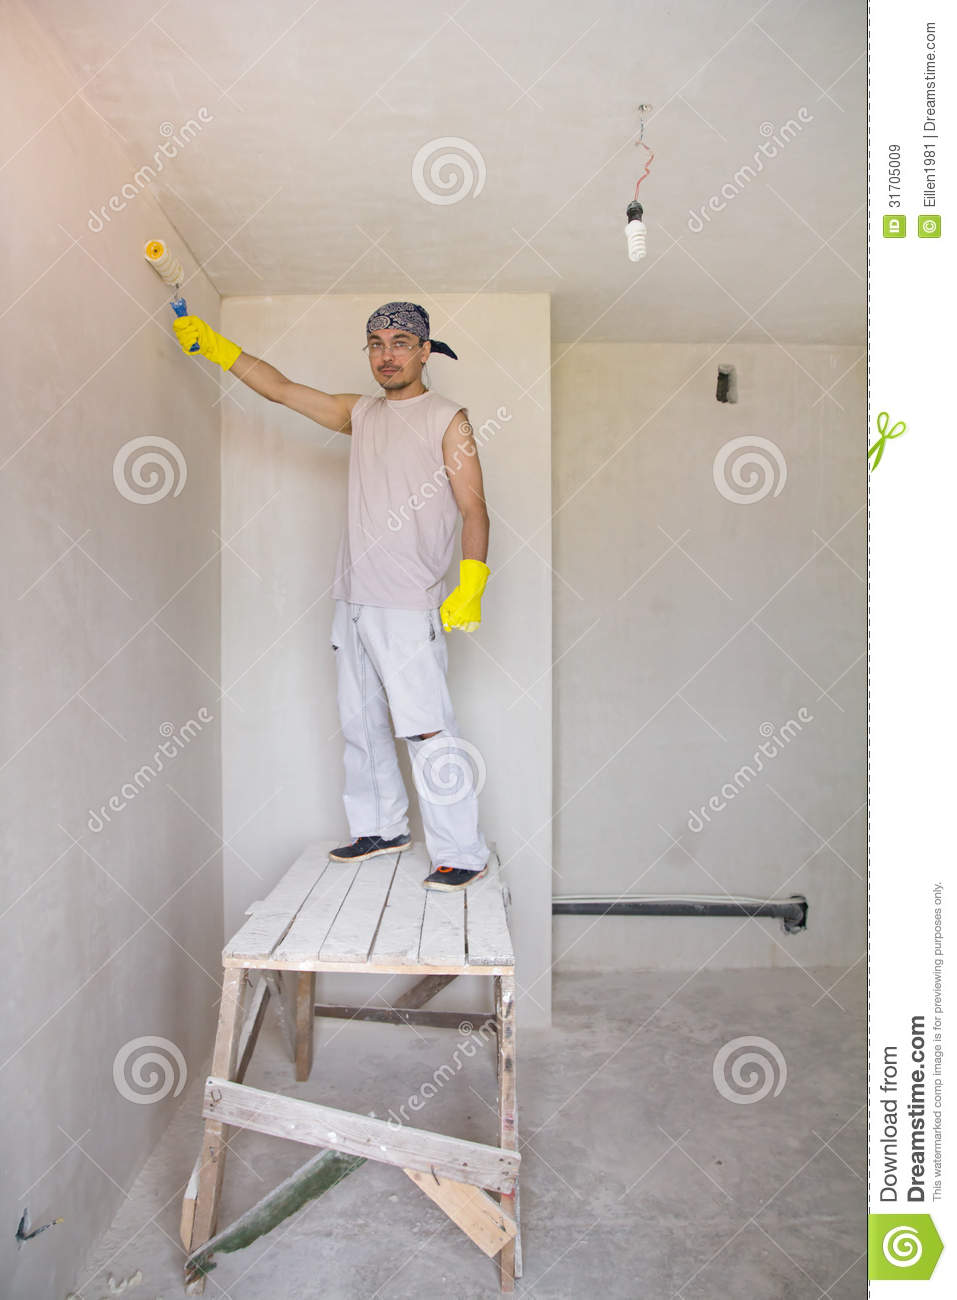 Worker painting wall with painting rollerWorker Painting Wall